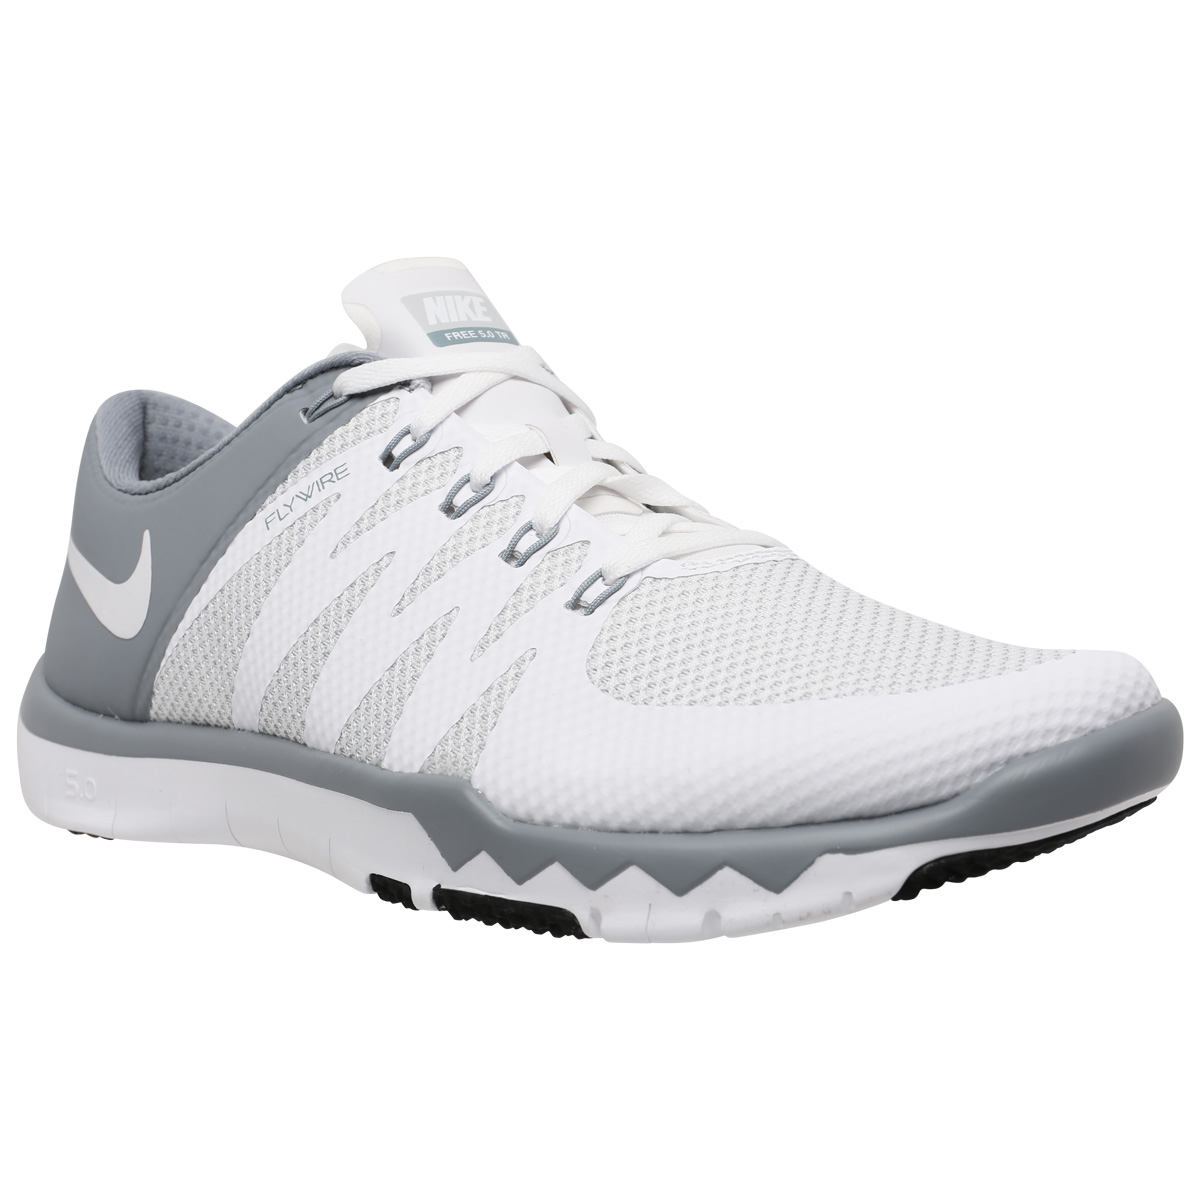 on sale 73ba3 2a0c8 Nike Free Run Flight Origin